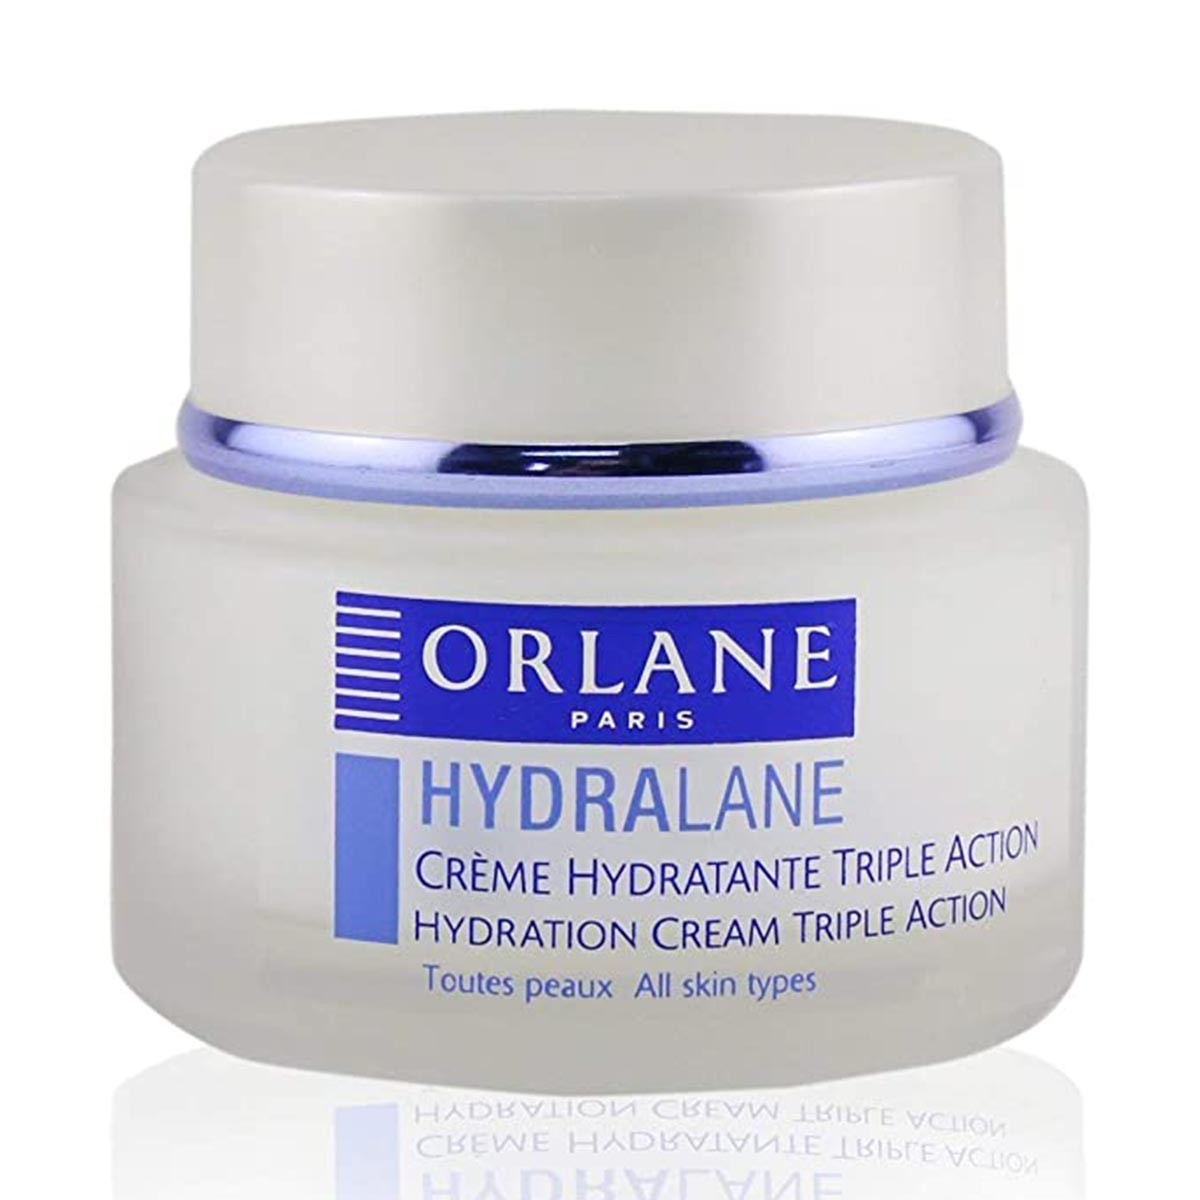 Orlane hydralane hydration cream triple action